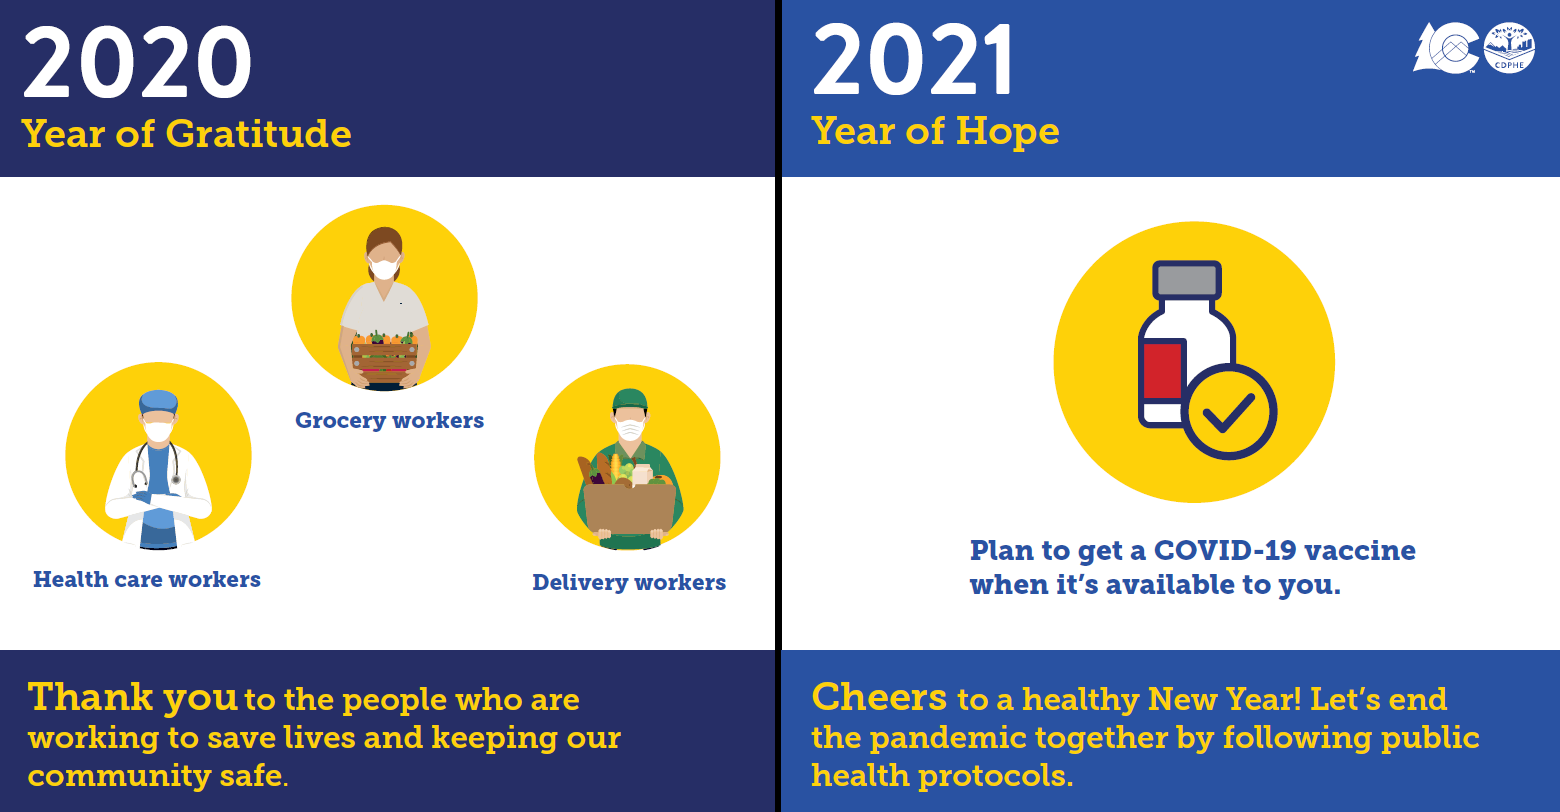 Graphic: 2020 Year of Gratitude. Side One: Image of a health worker,